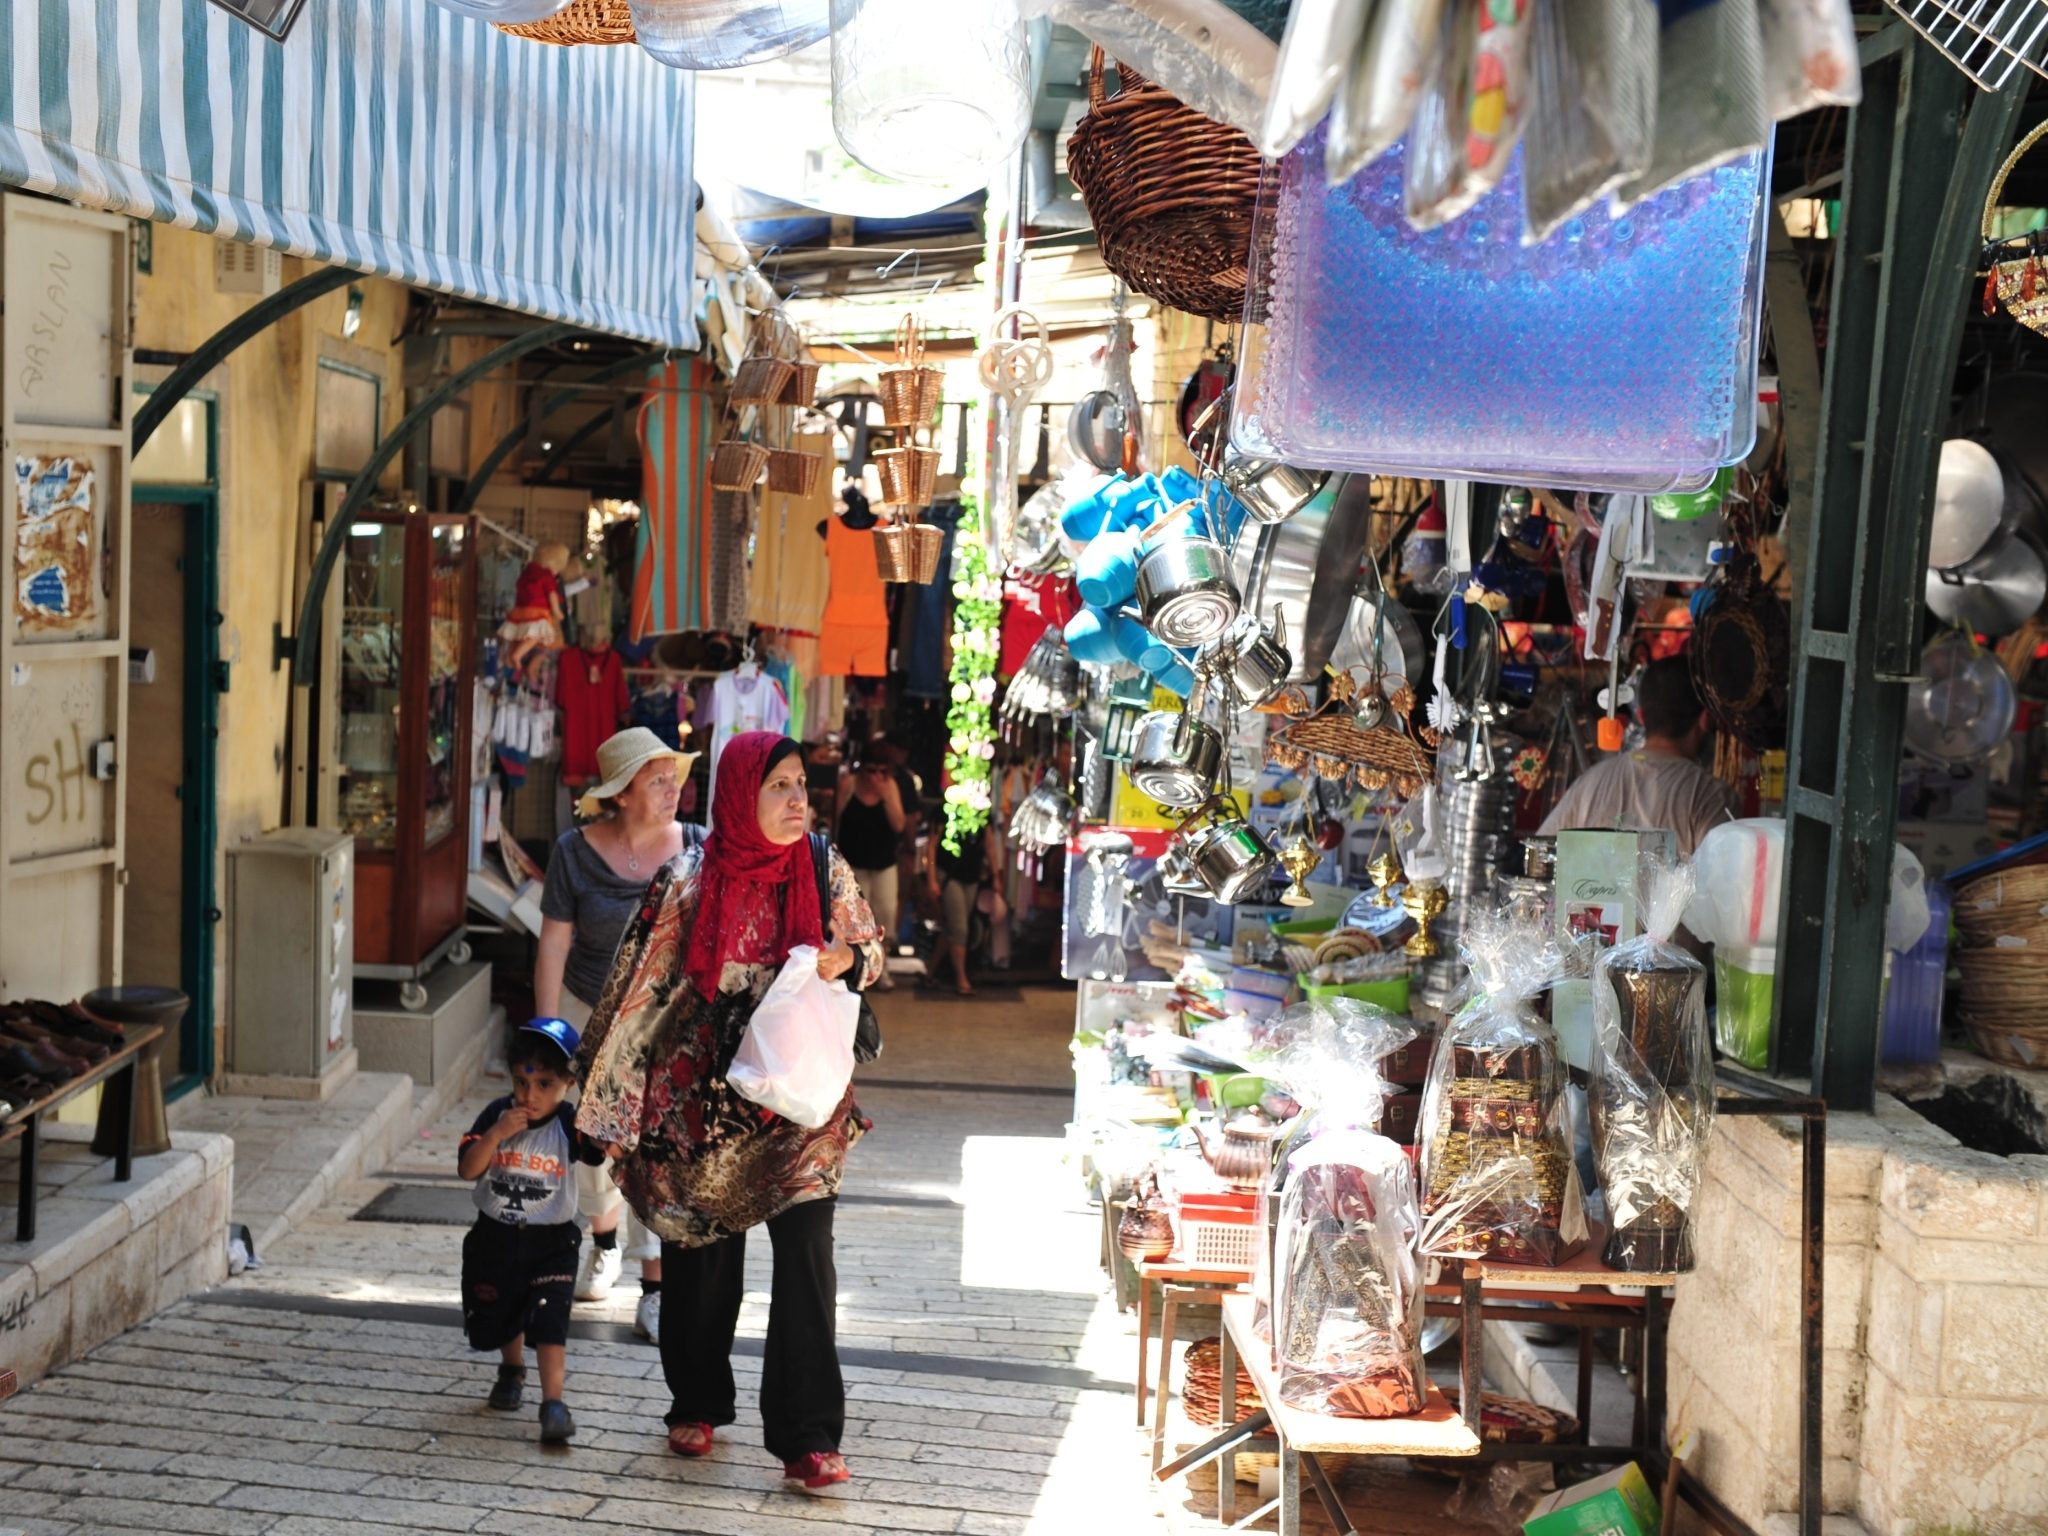 Old Market in Nazareth